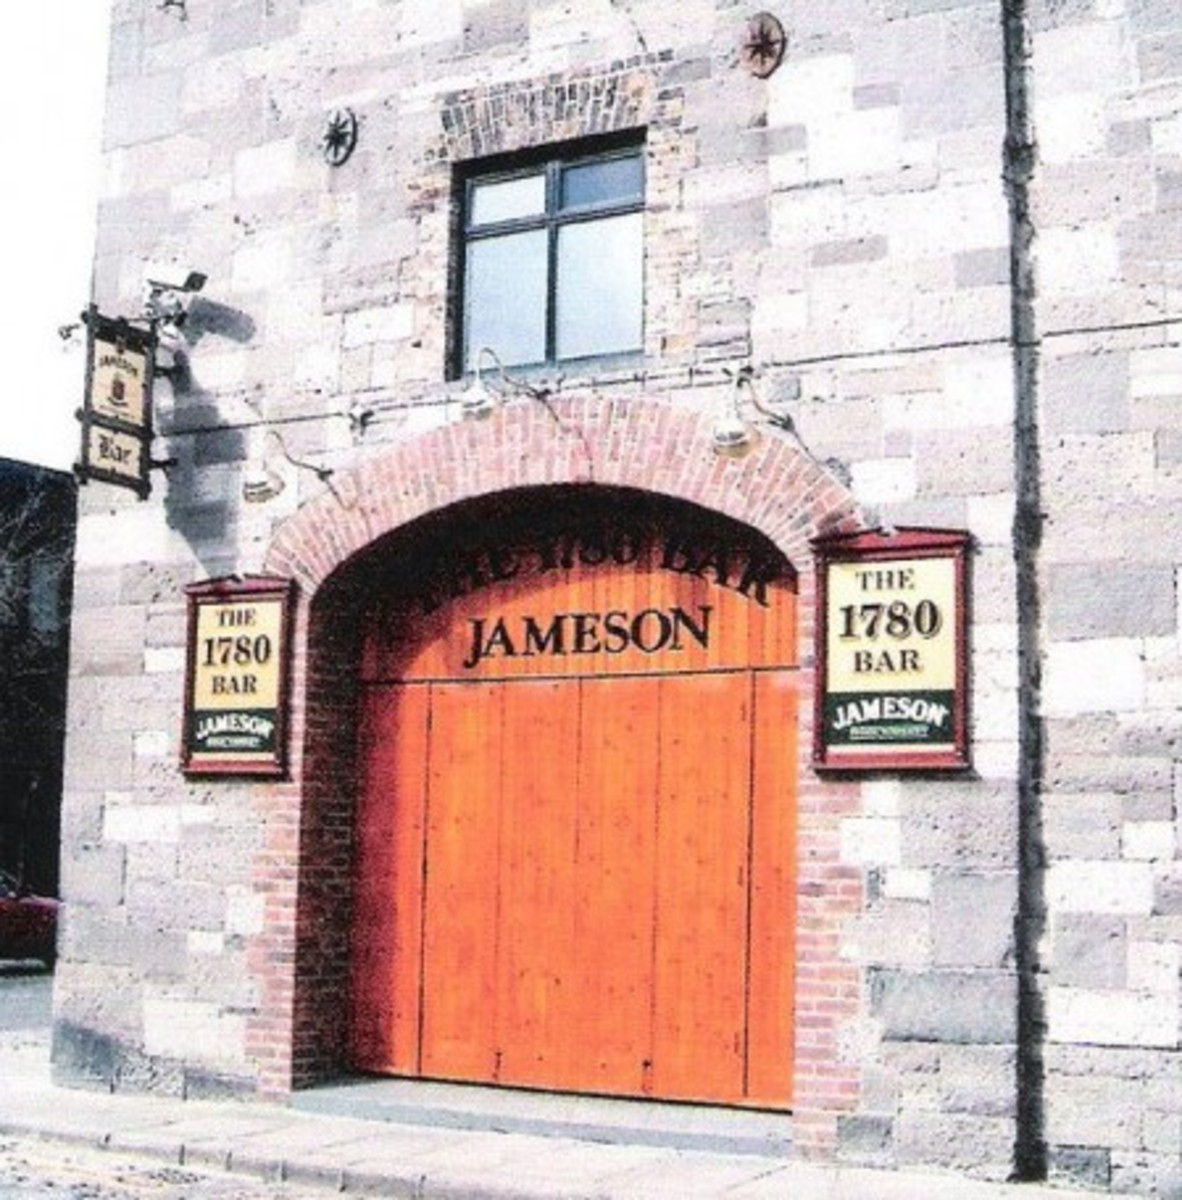 Visiting The Jameson Museum in Dublin Ireland